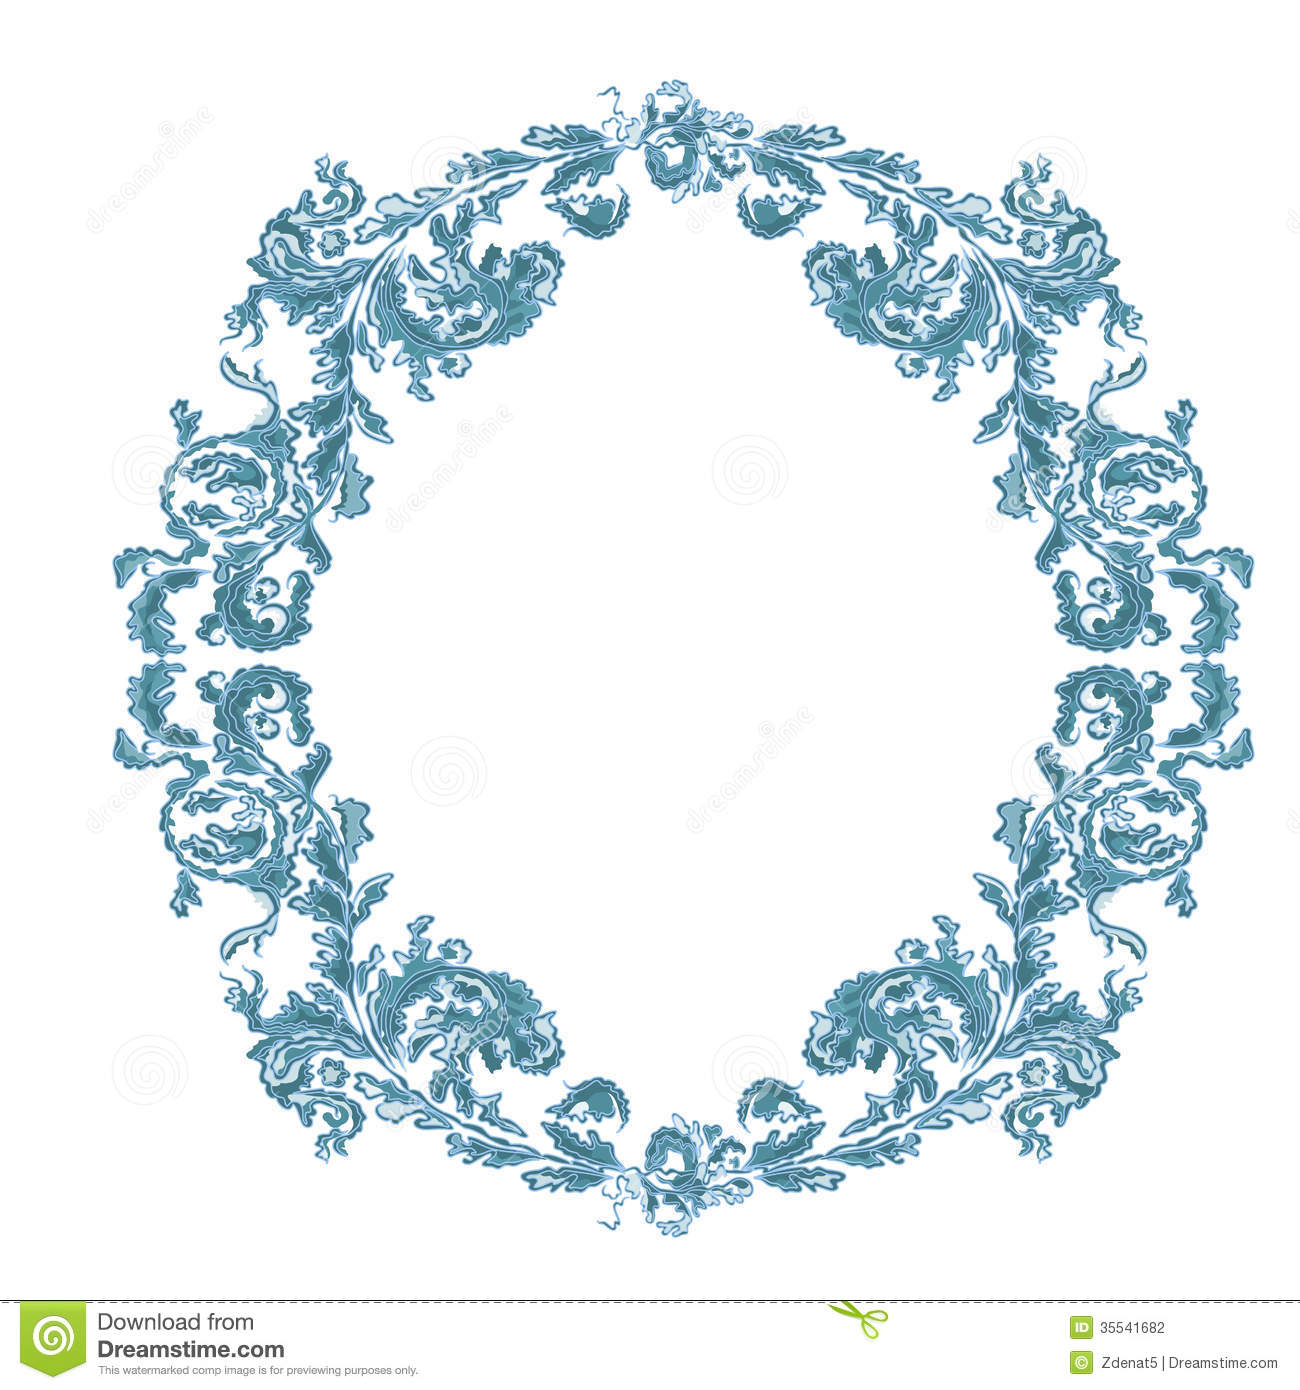 Border lace pattern design watercolor ornament on blue background - Round Frame Ornamental Floral Blue Color Stock Photography